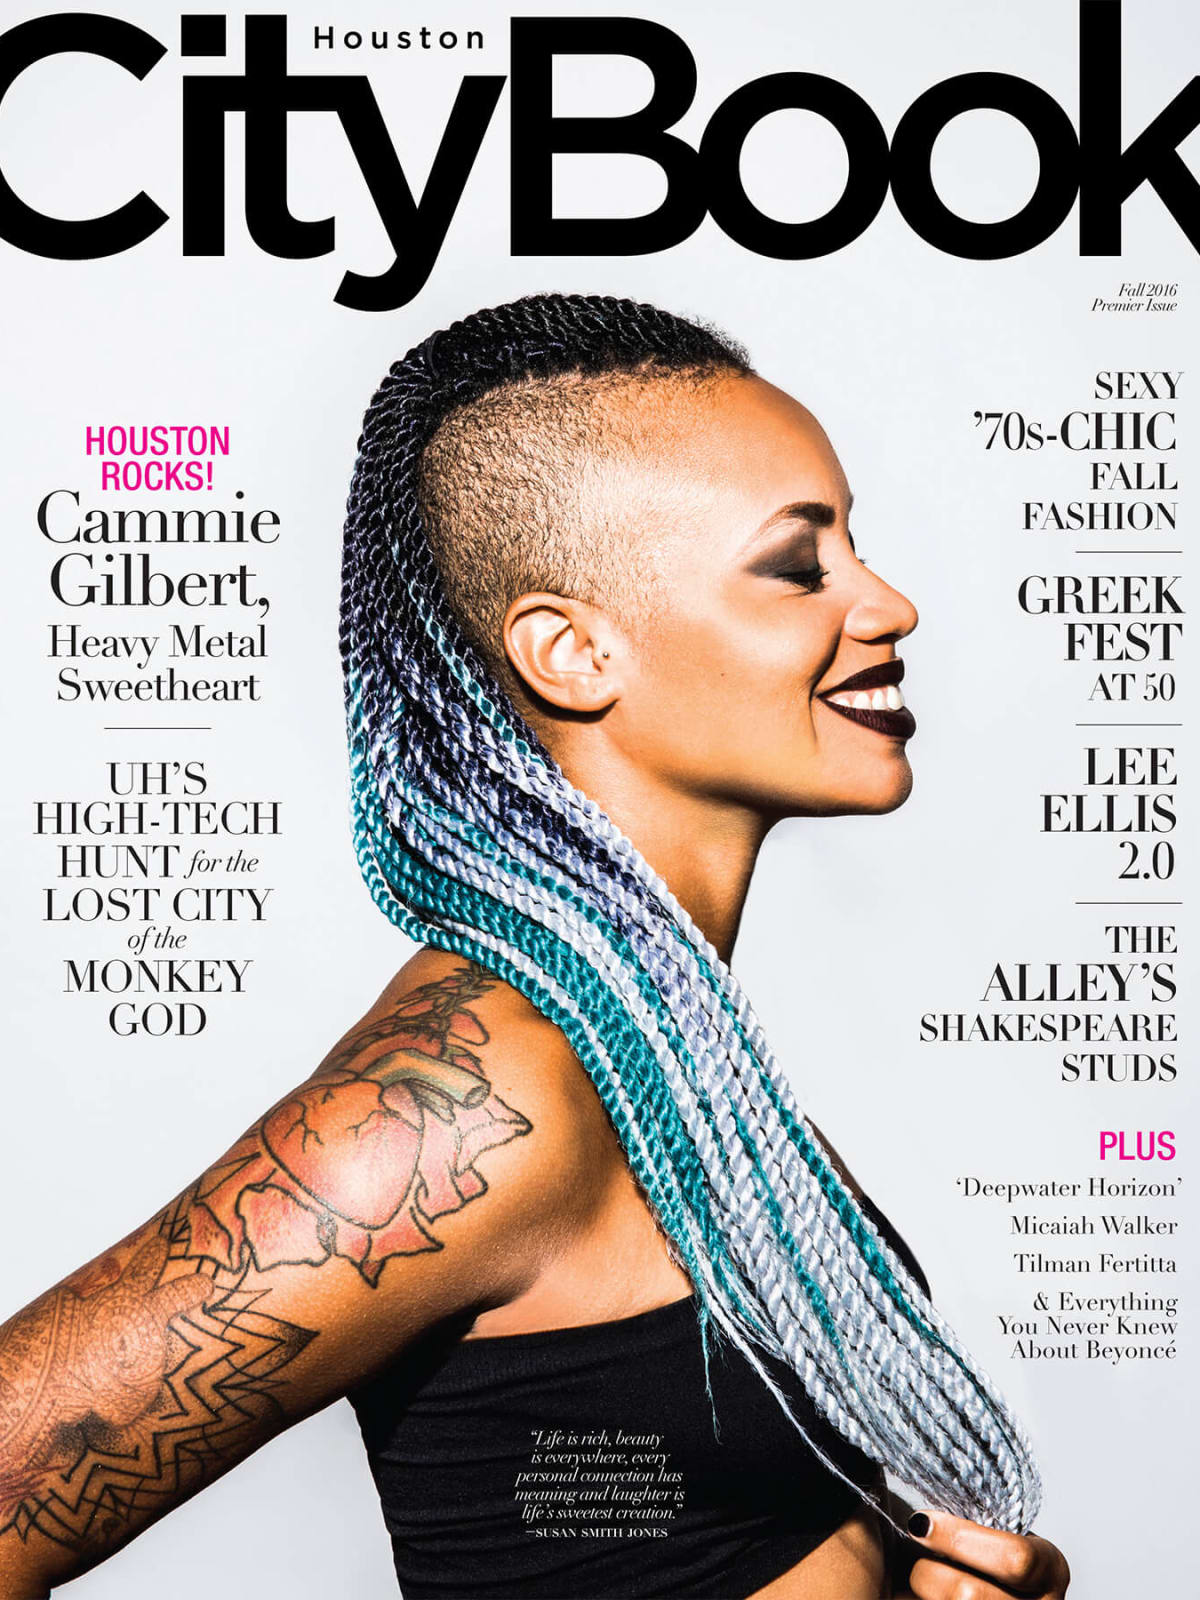 CityBook front cover 9/16